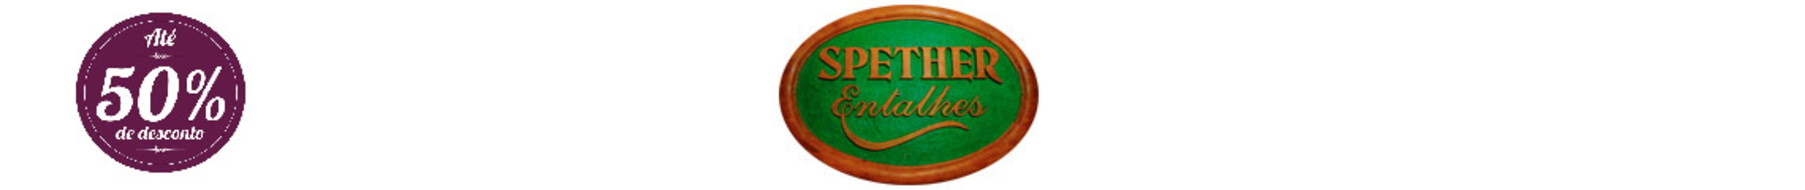 SPETHER Entalhes